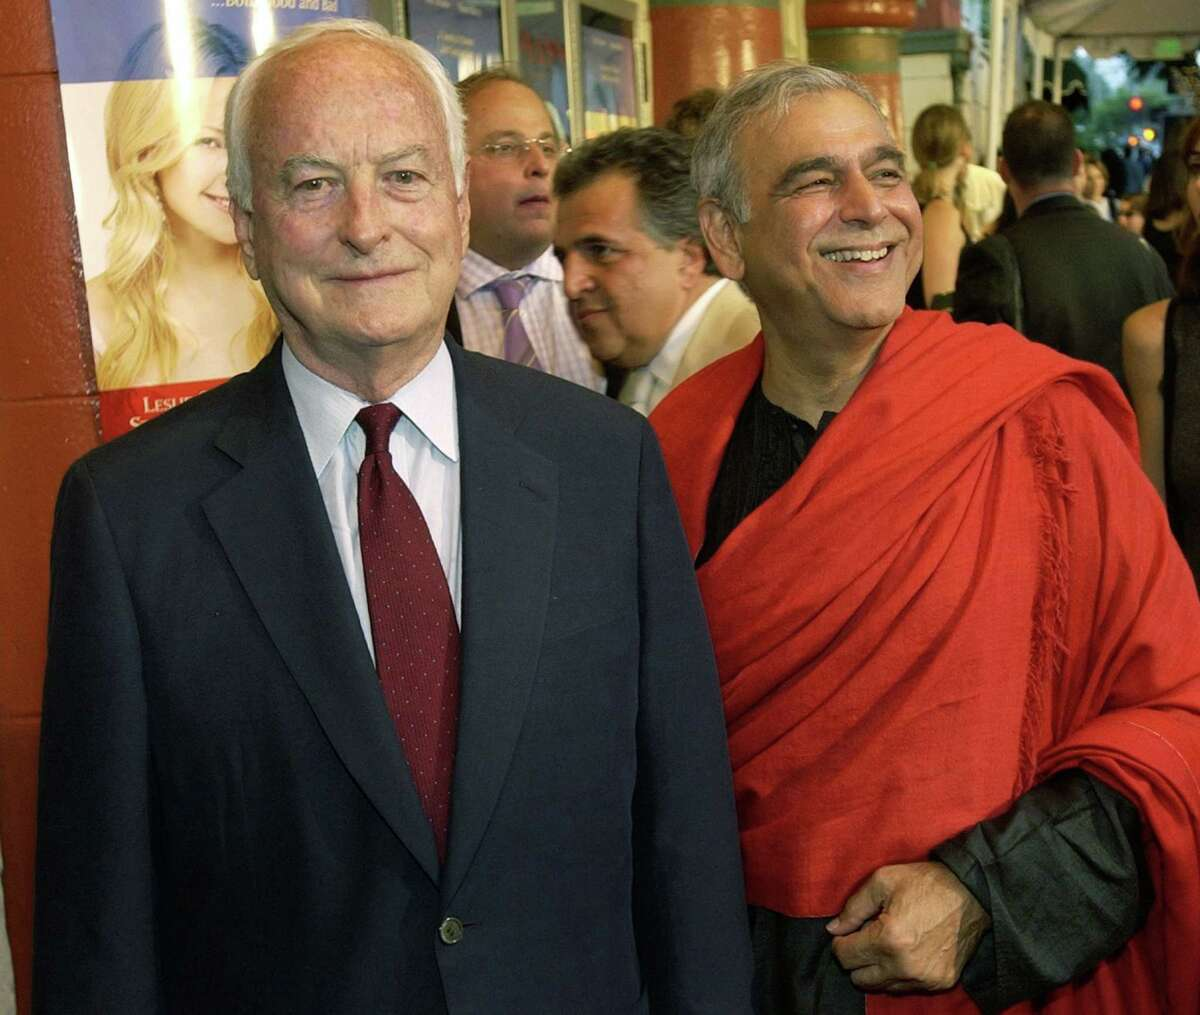 Director James Ivory (left) and producer Ismail Merchant were professional collaborators - and life partners - from 1961 until Merchant's death in 2005. The artistic partnership was the longest-lasting in the history of independent film history, according to the Guinness Book of World Records. REUTERS/Lucy Nicholson